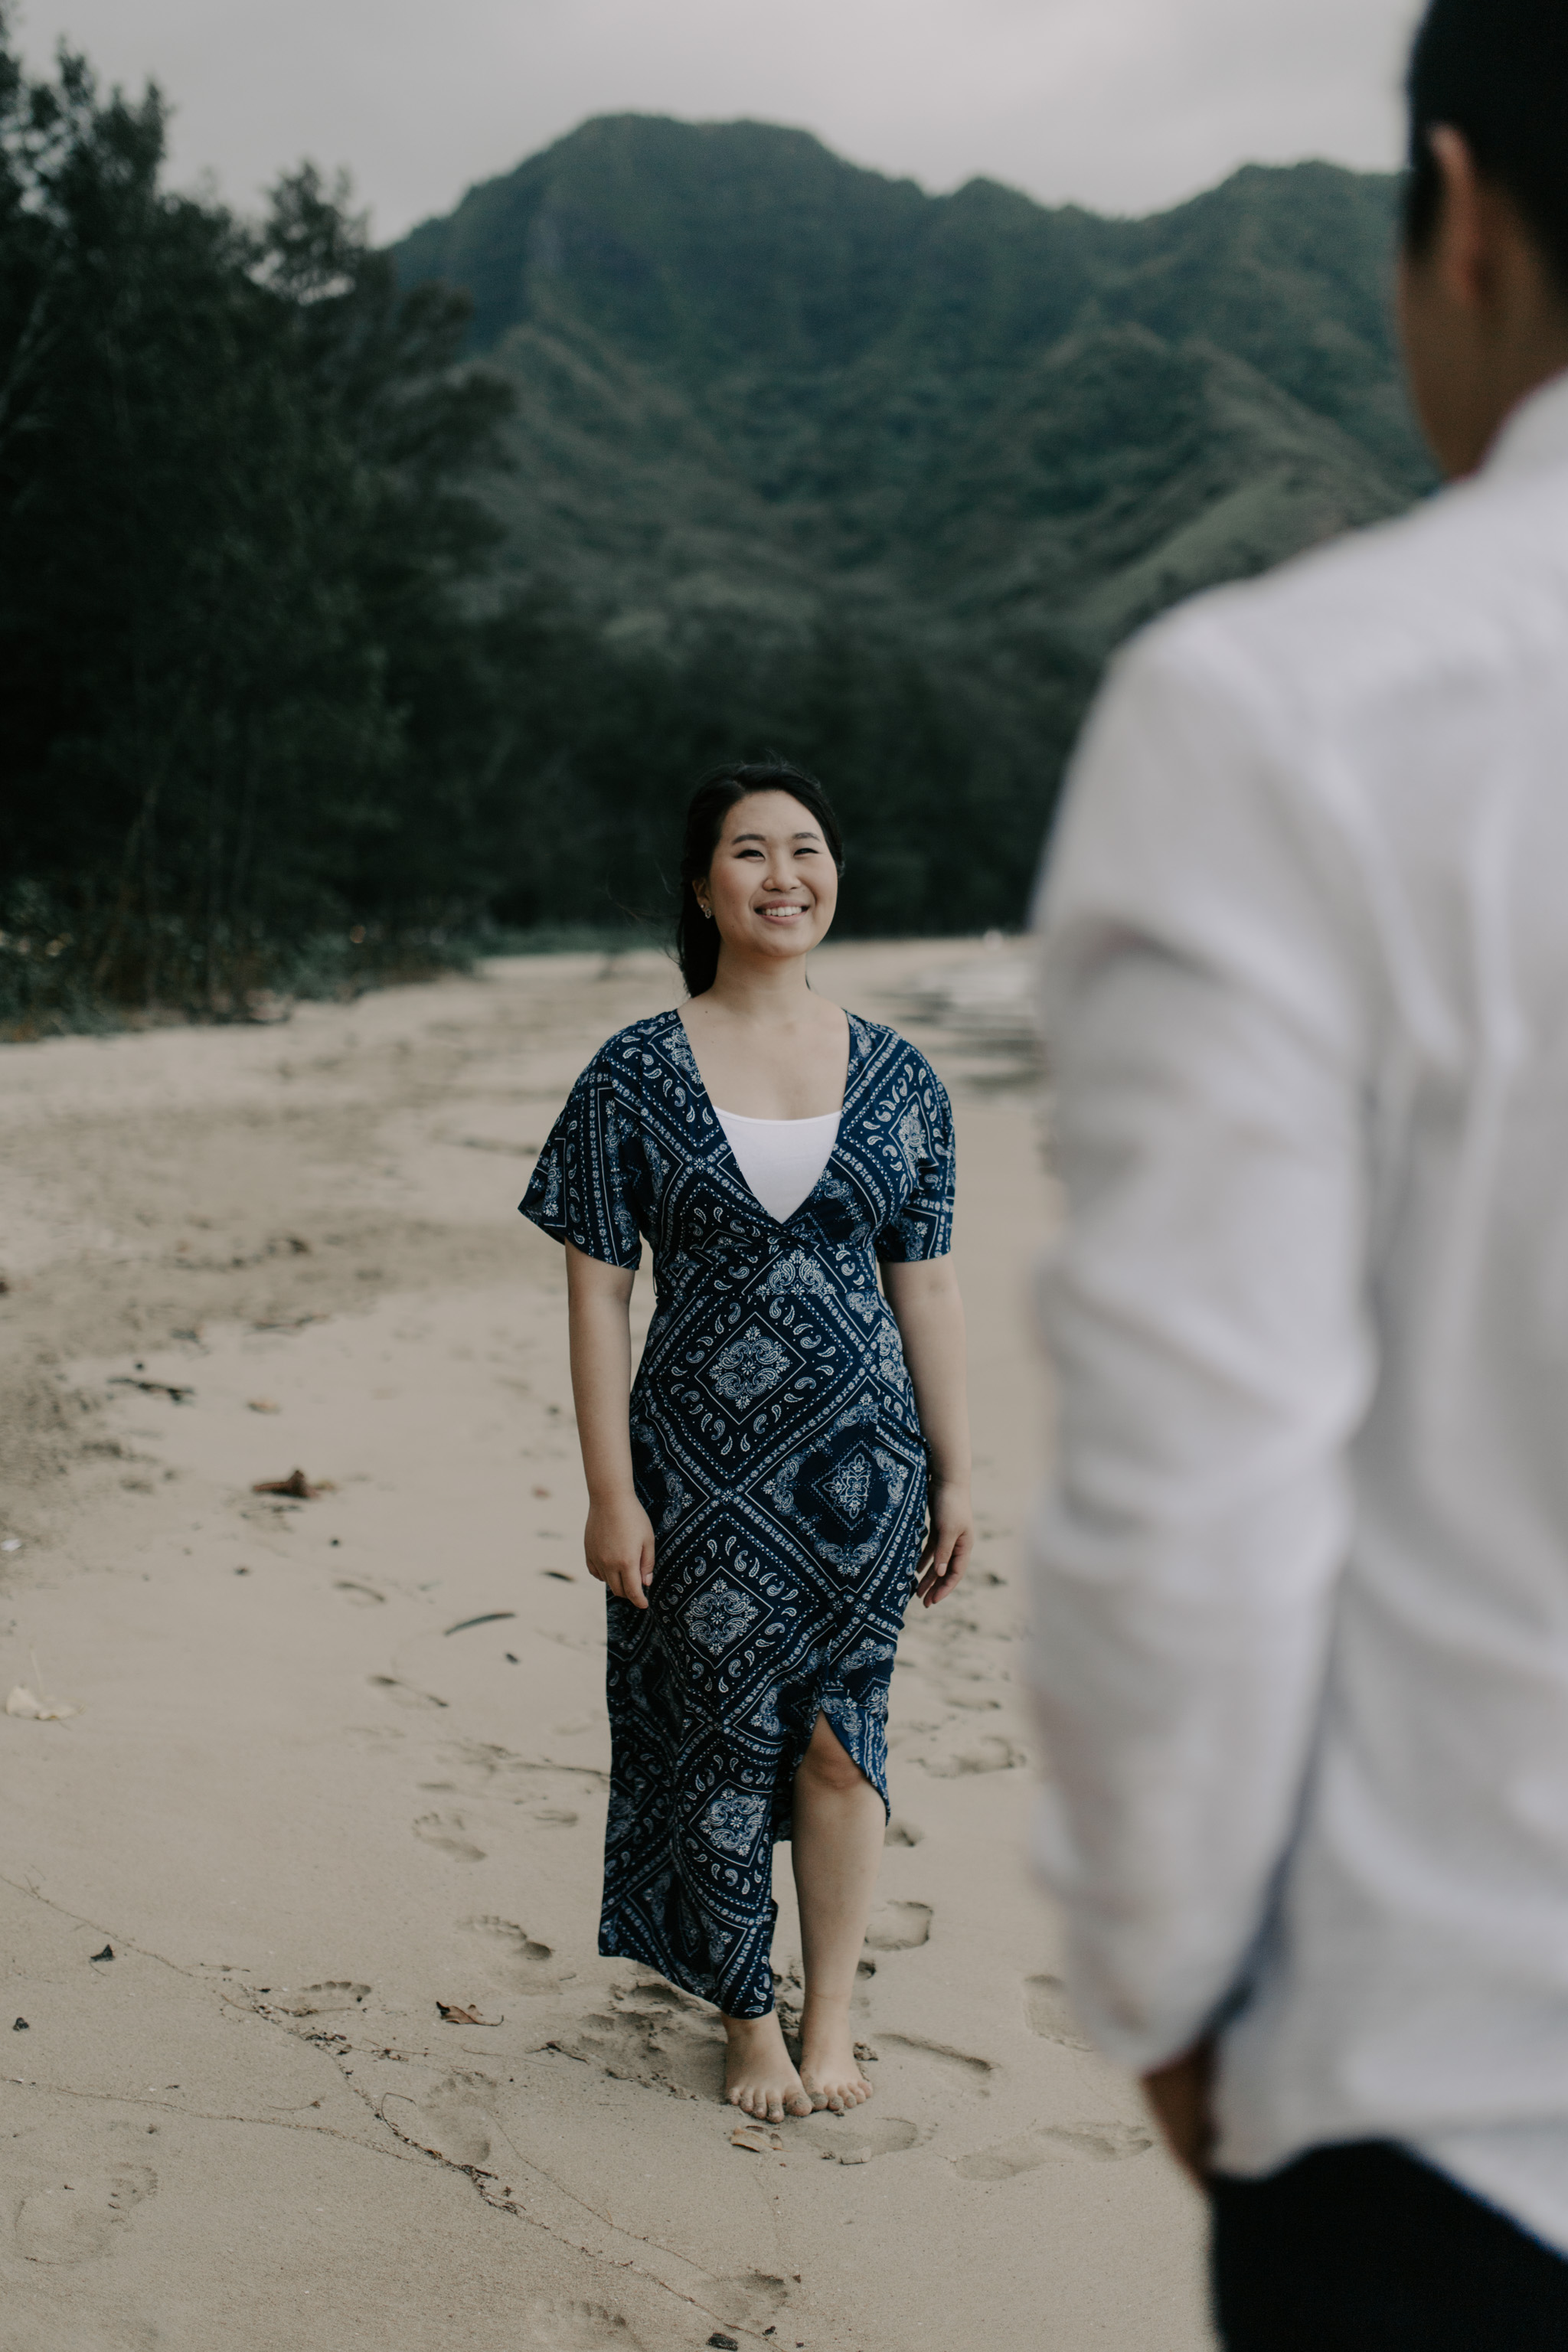 Hawaii Mountain and Beach Engagement Session by Desiree Leilani Hawaii Wedding Photographer